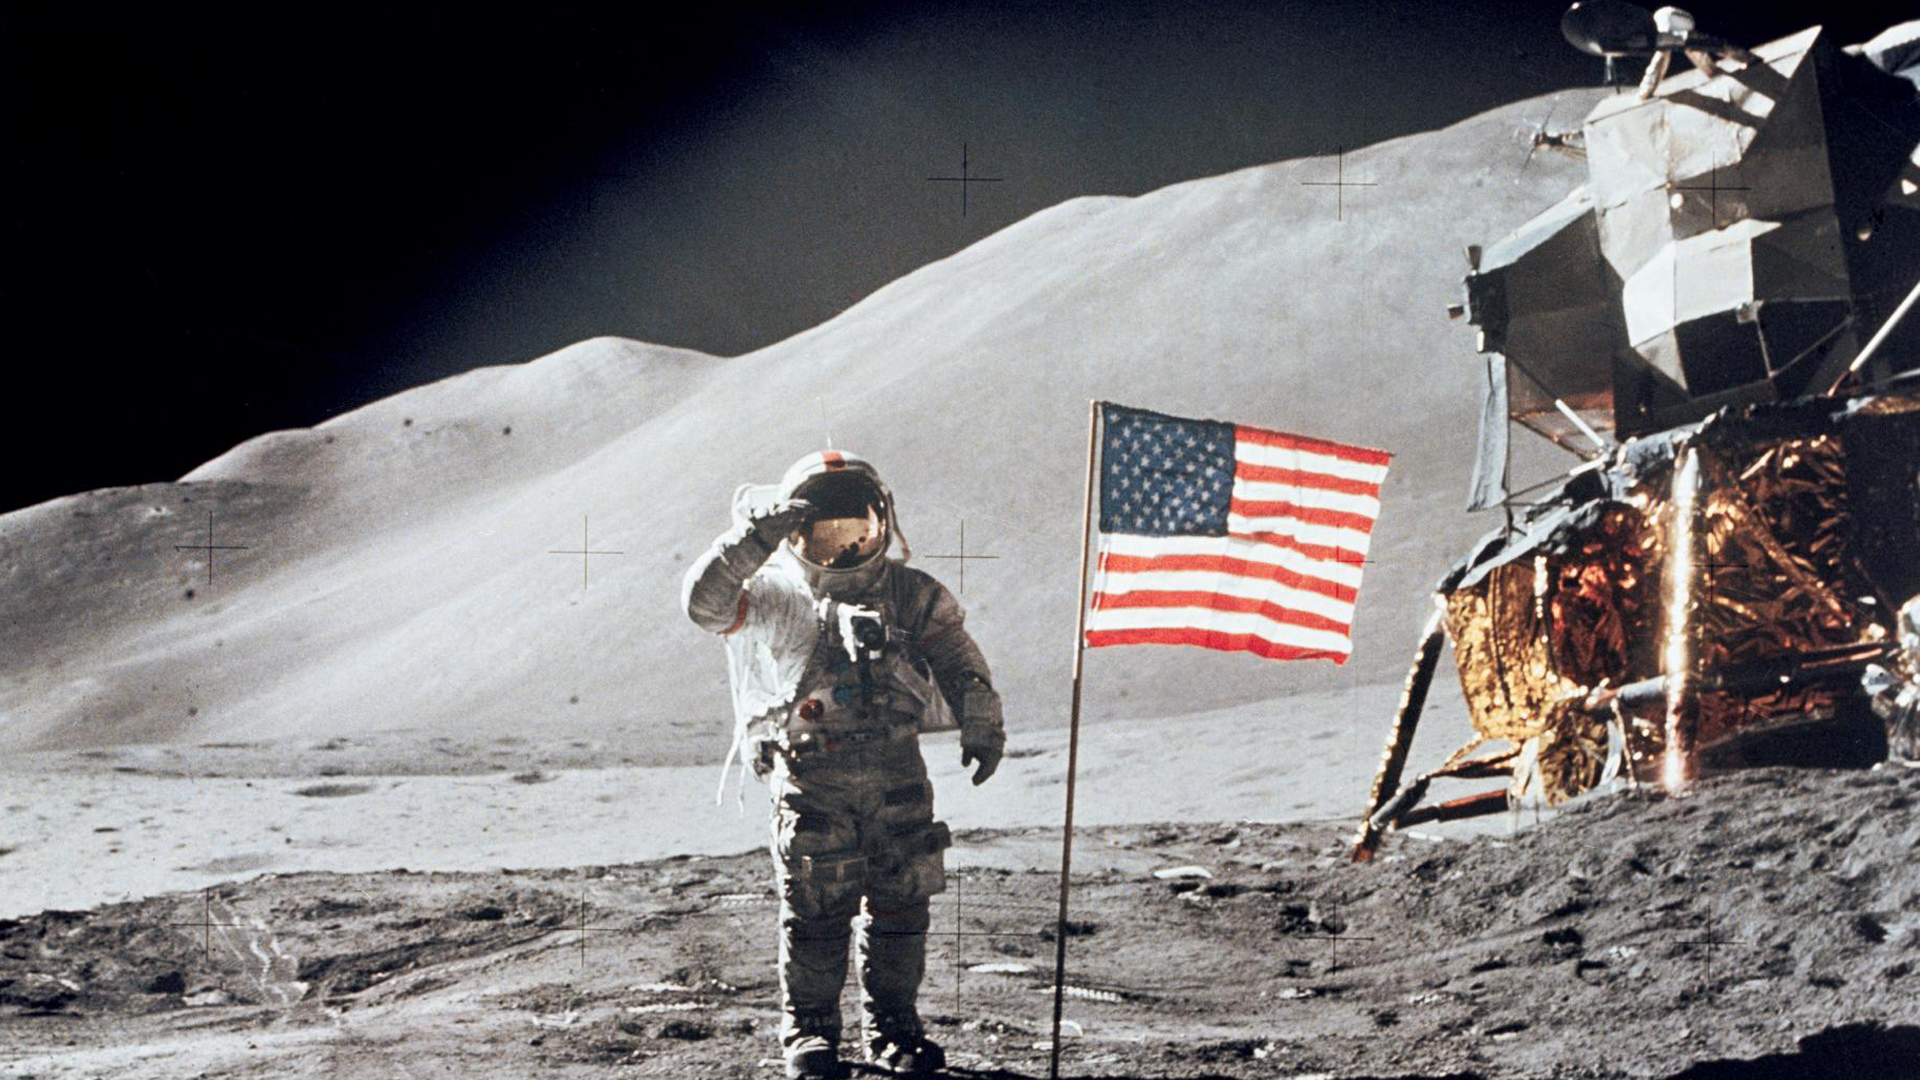 Astronaut David R. Scott, commander, gives a military salute while standing beside the U.S. flag during the Apollo 15 lunar surface extravehicular activity at the Hadley-Apennine landing site. (Credit: NASA)